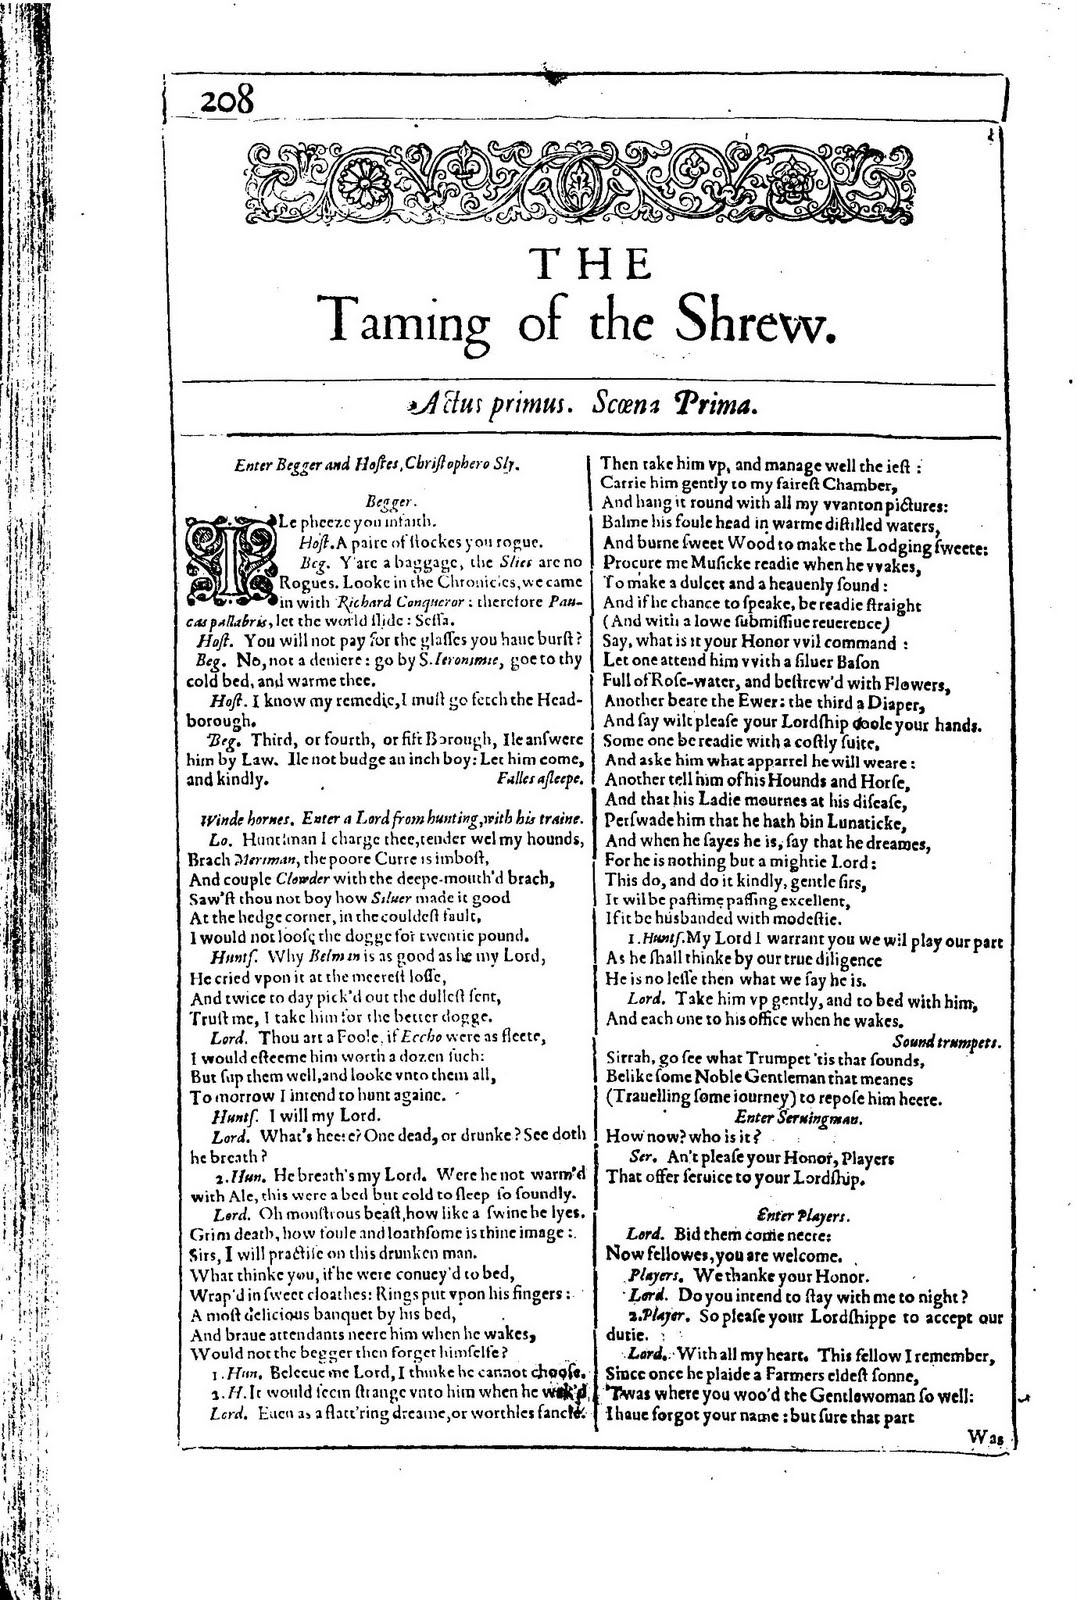 shakespeare s england the taming of a the shrew the taming of a the shrew